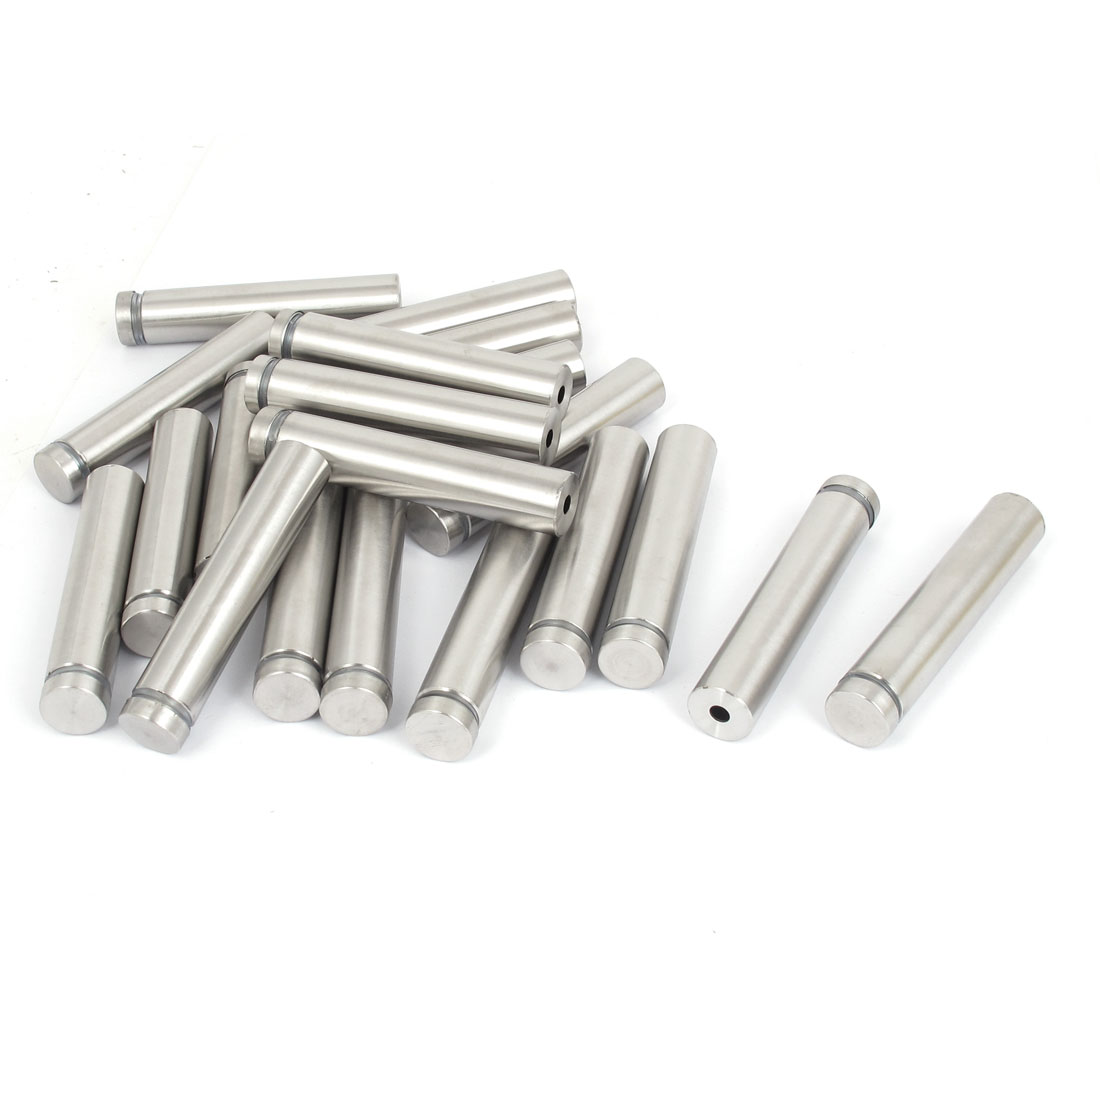 16mm x 80mm Stainless Steel Advertising Frameless Glass Standoff Pins 20pcs